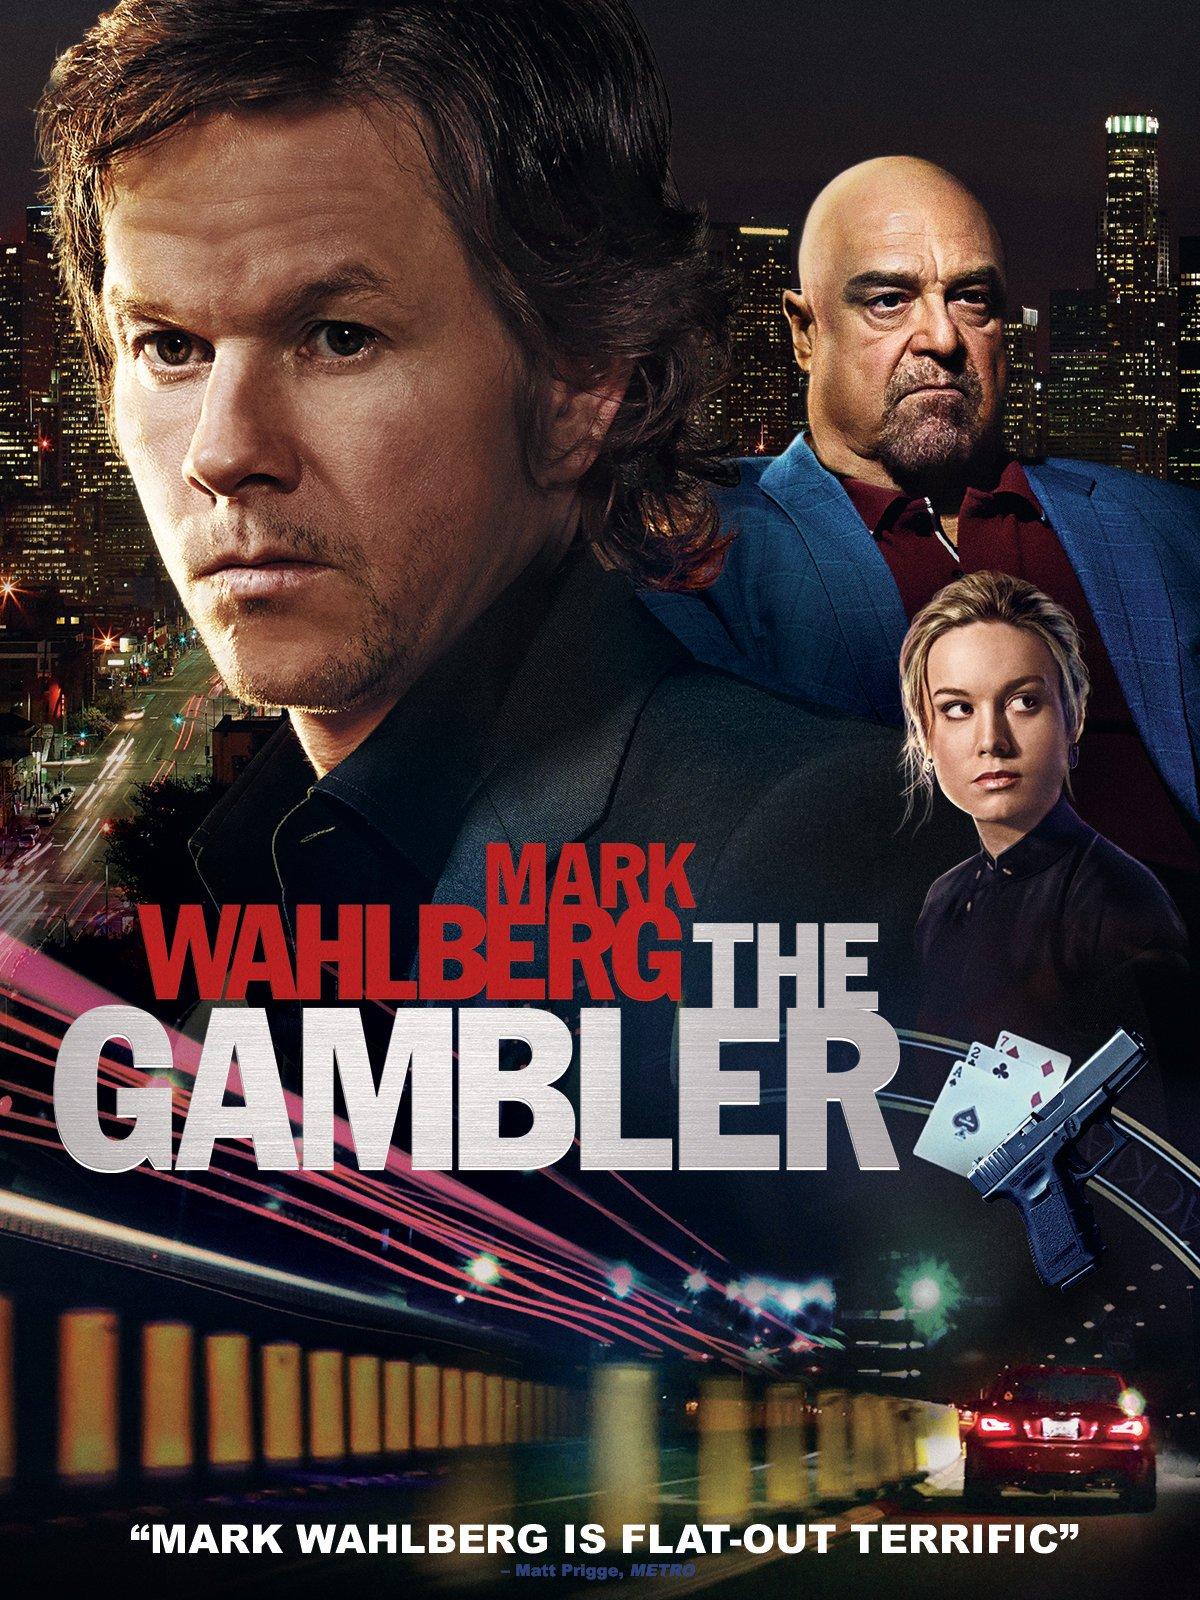 Watch gambler online роза casino плетистая